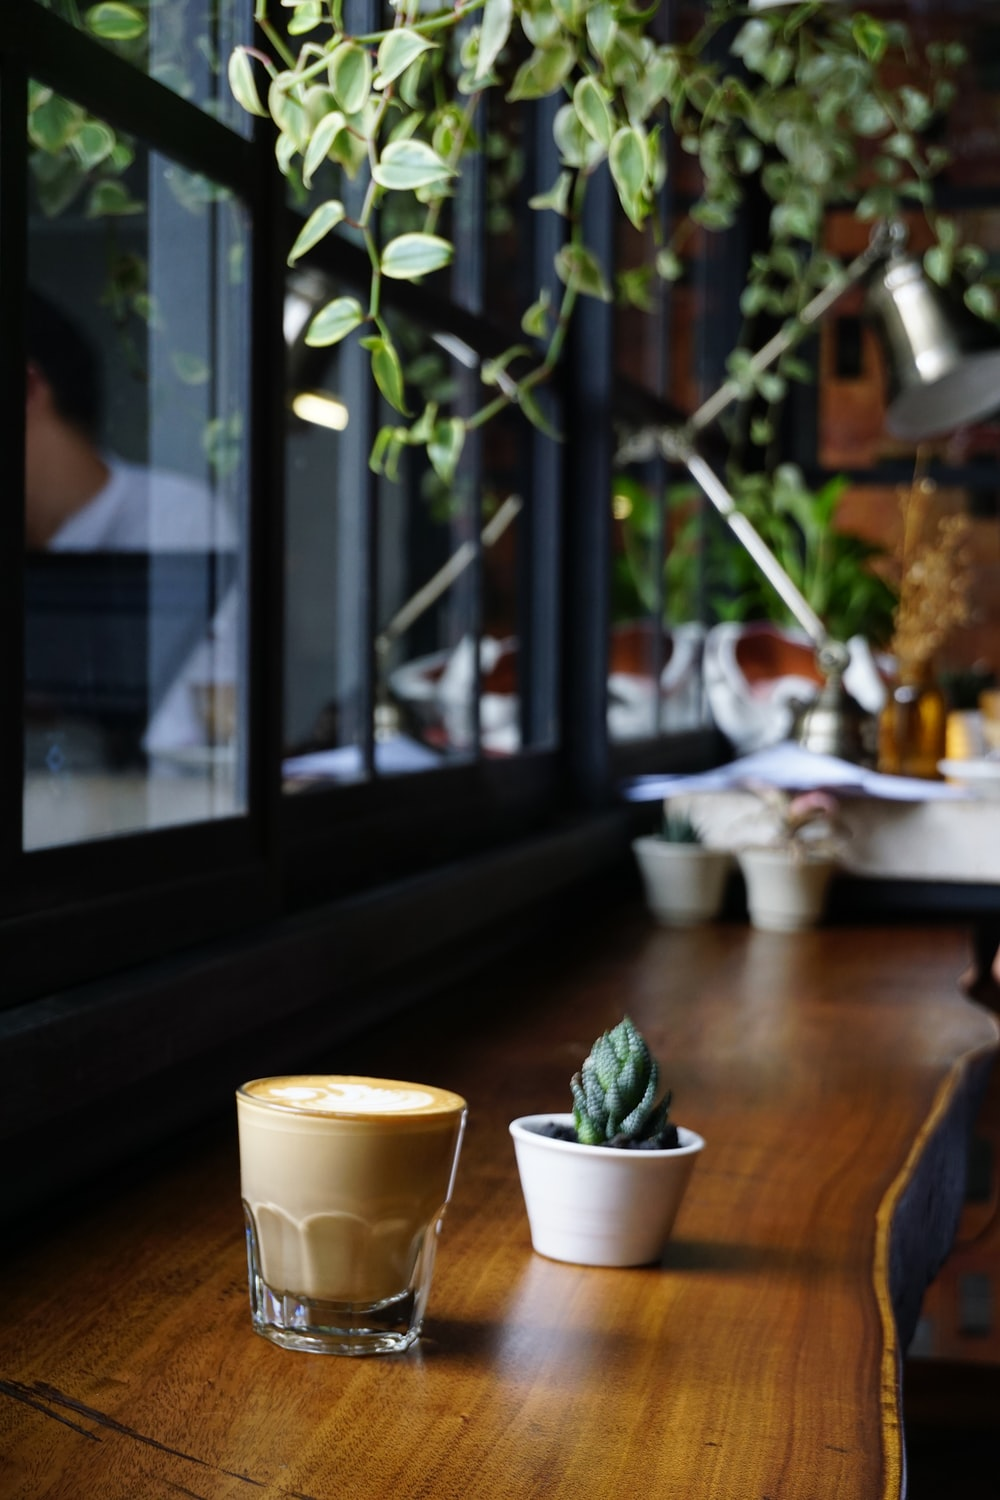 latte and cactus on brown wooden table